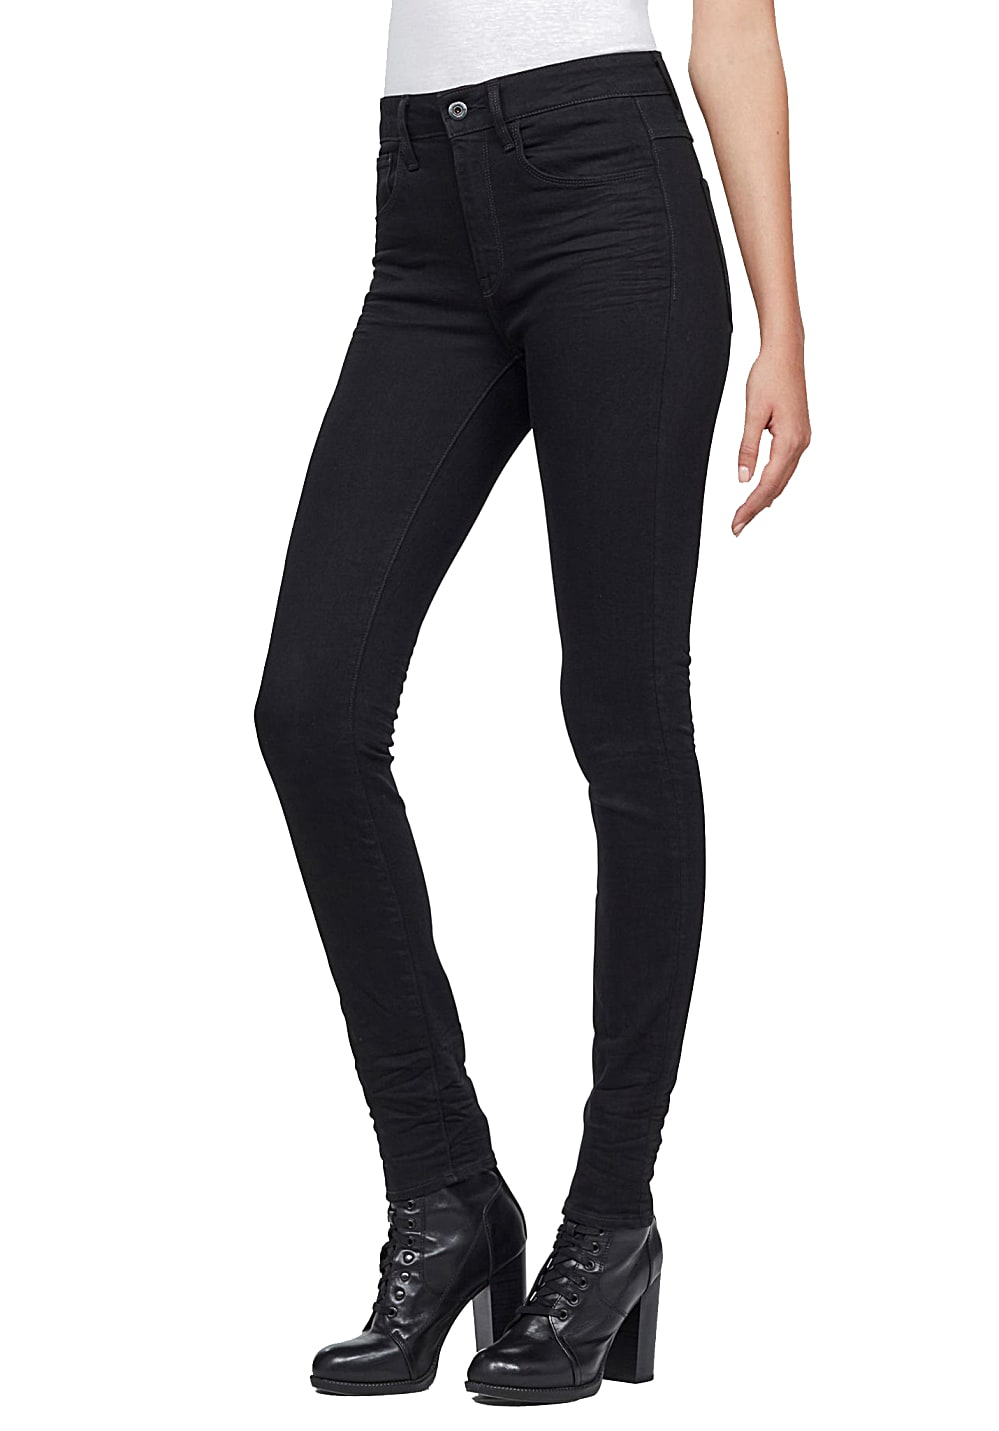 G-STAR RAW 3301 Deconstructed High Waist Skinny - Jeans für Damen - Schwarz